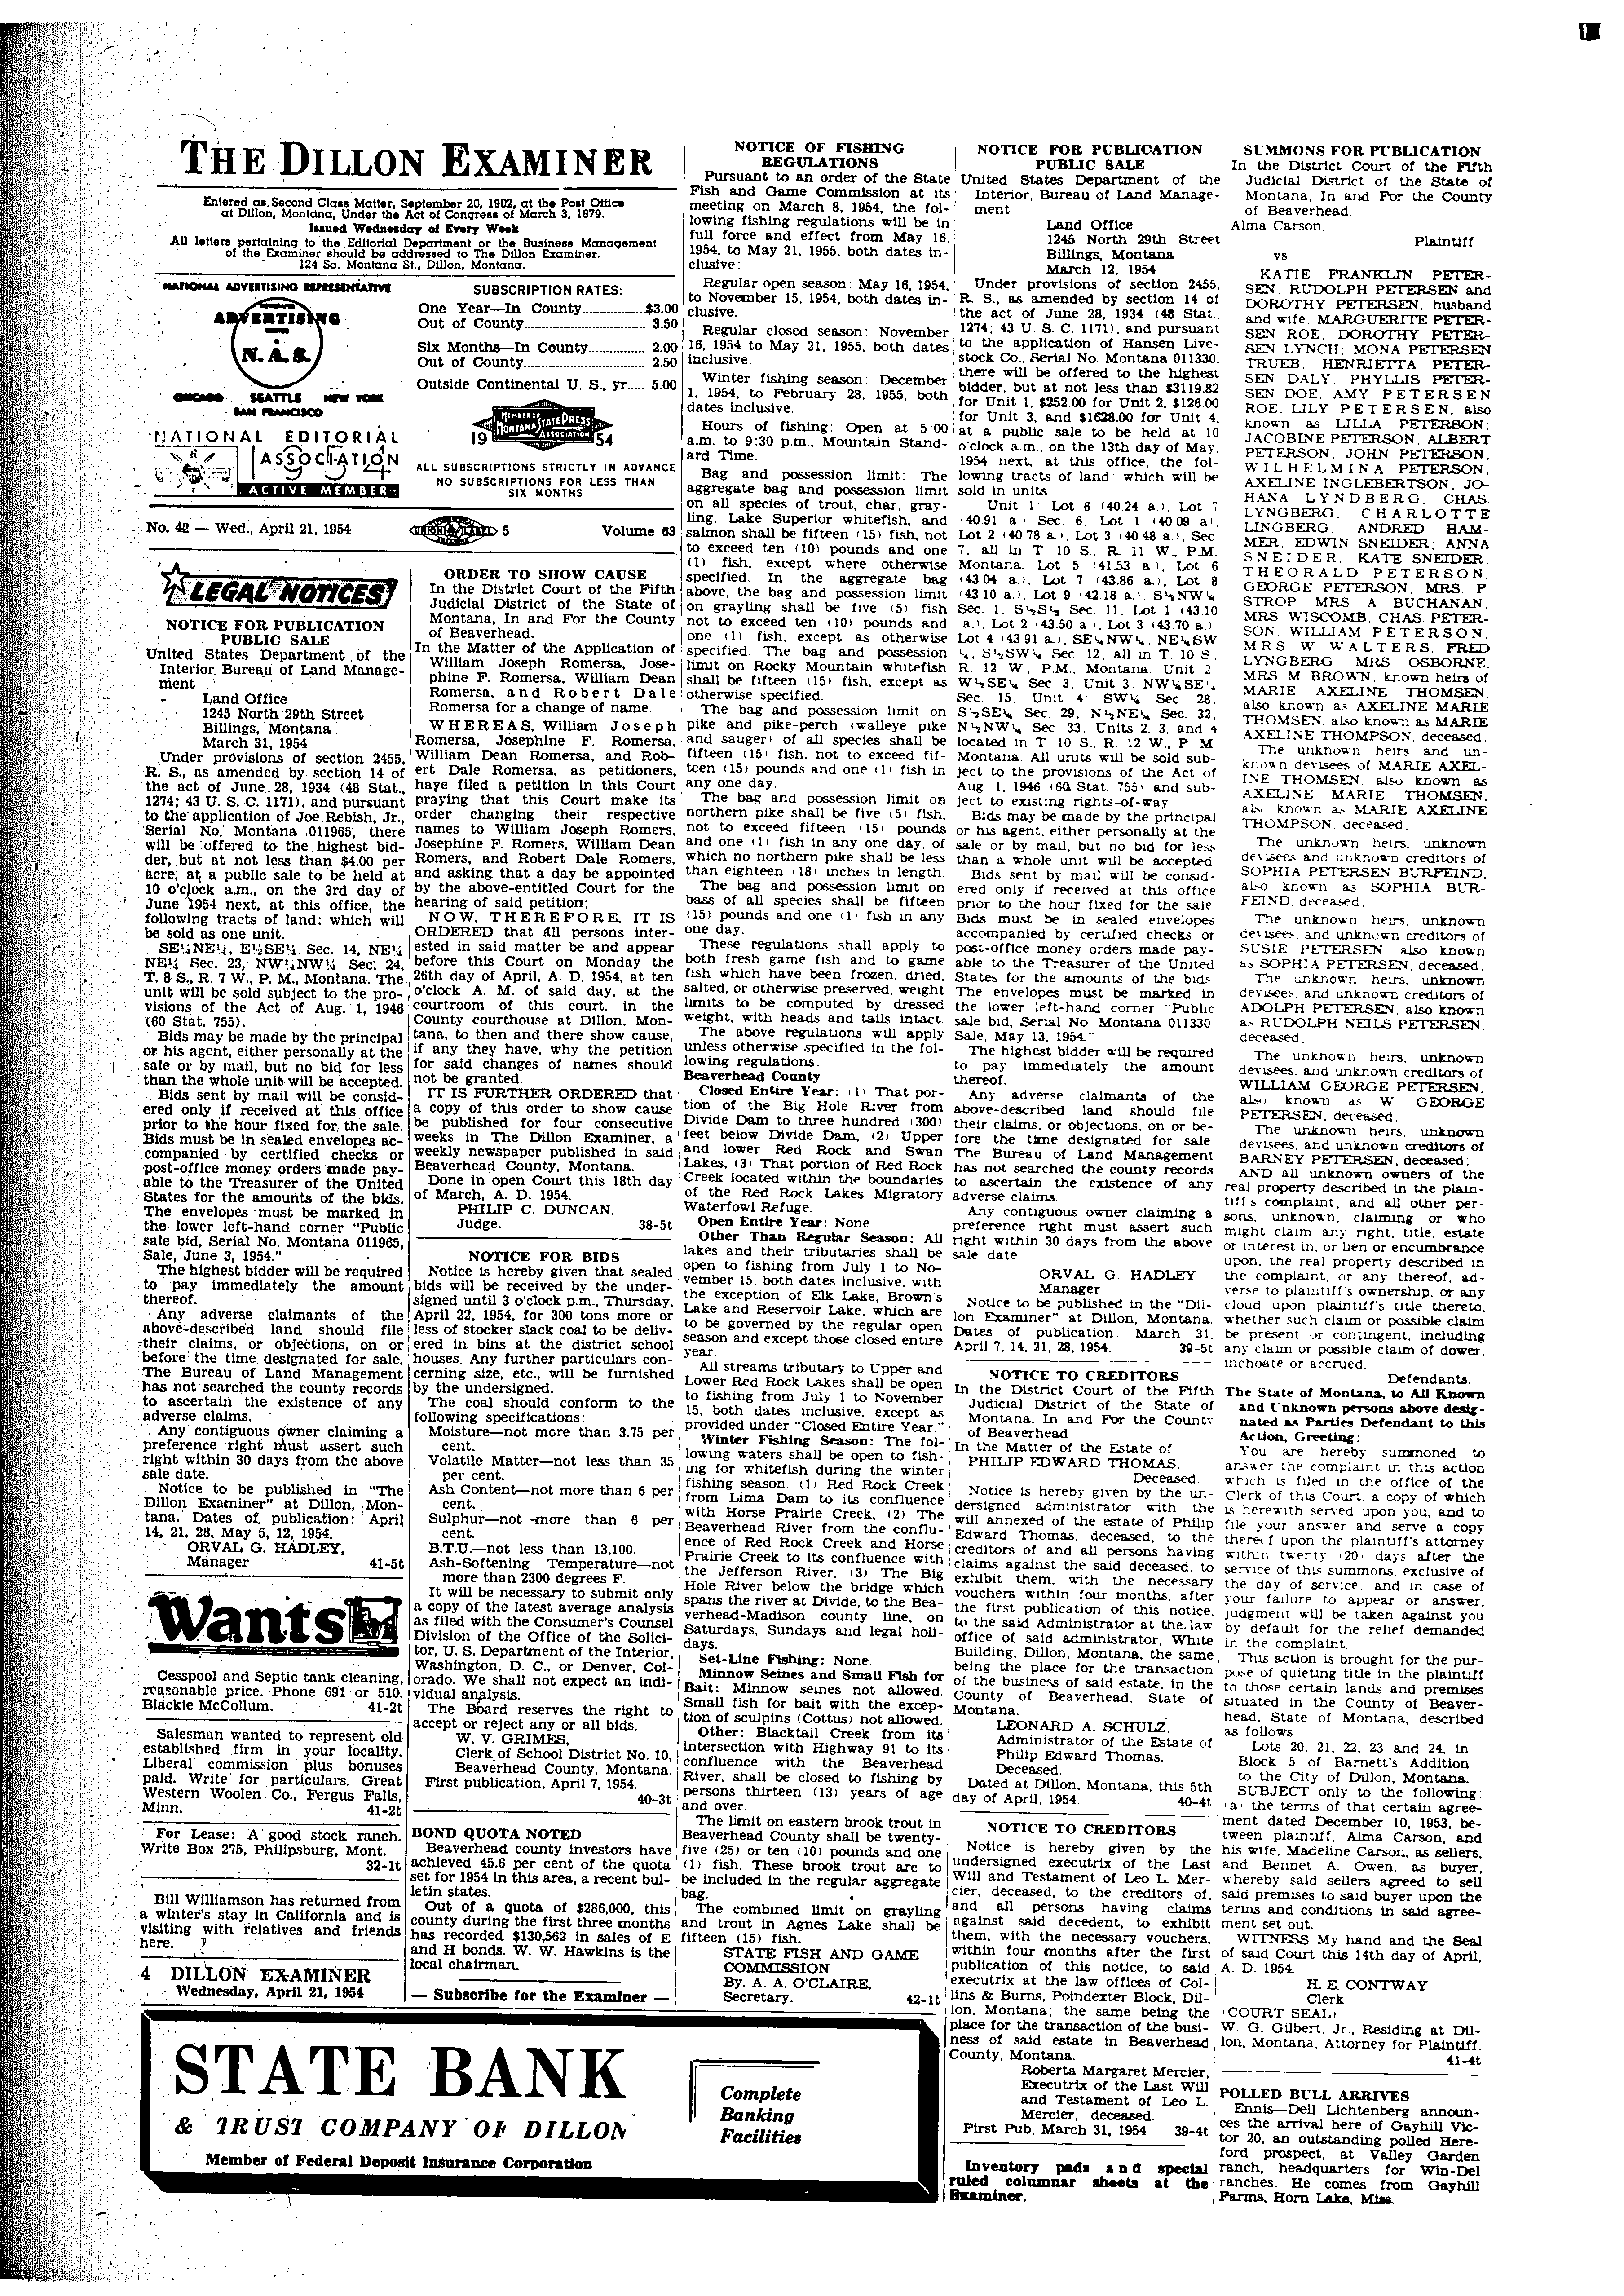 The Dillon Examiner (Dillon, Mont.) 1891-1962, April 21, 1954, Page on